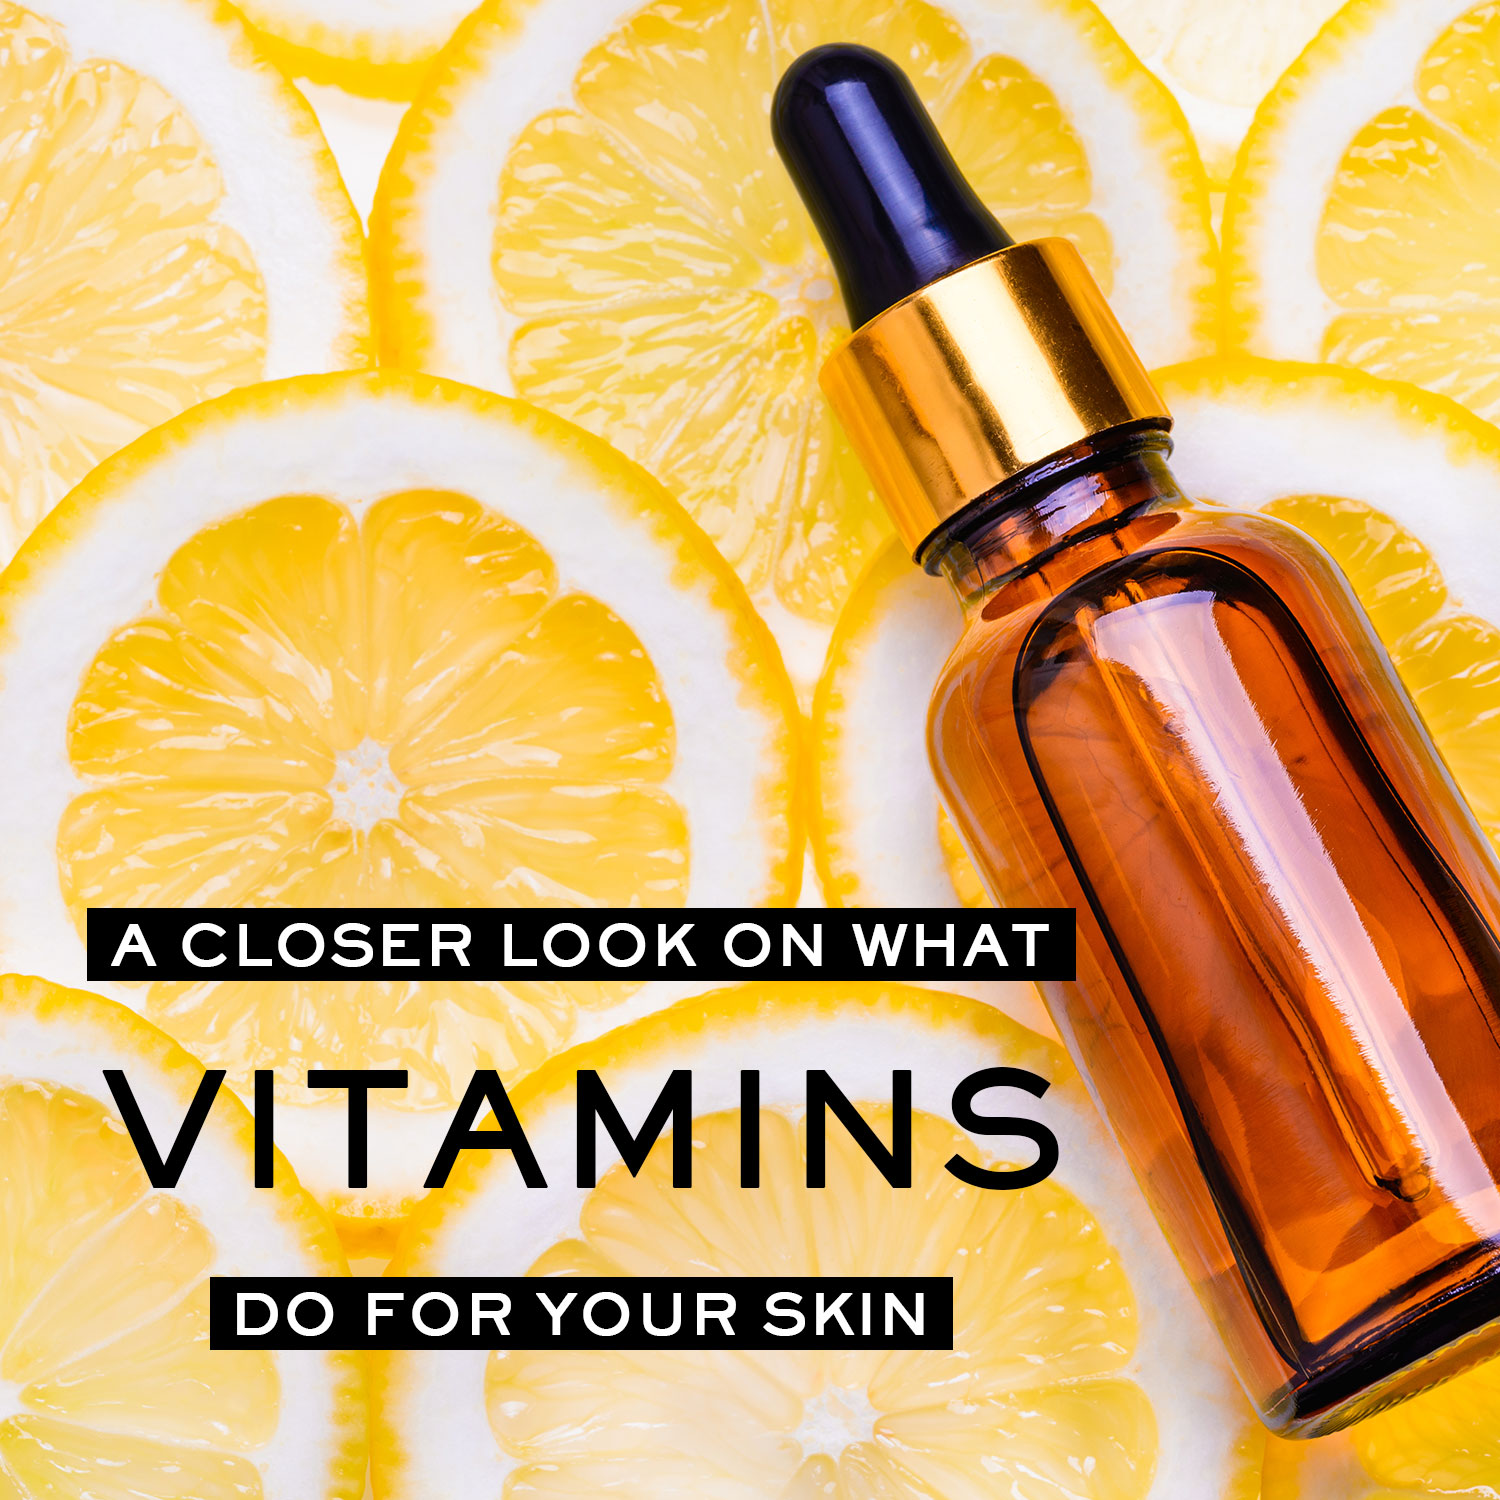 A Closer Look on What Vitamins Do for Your Skin